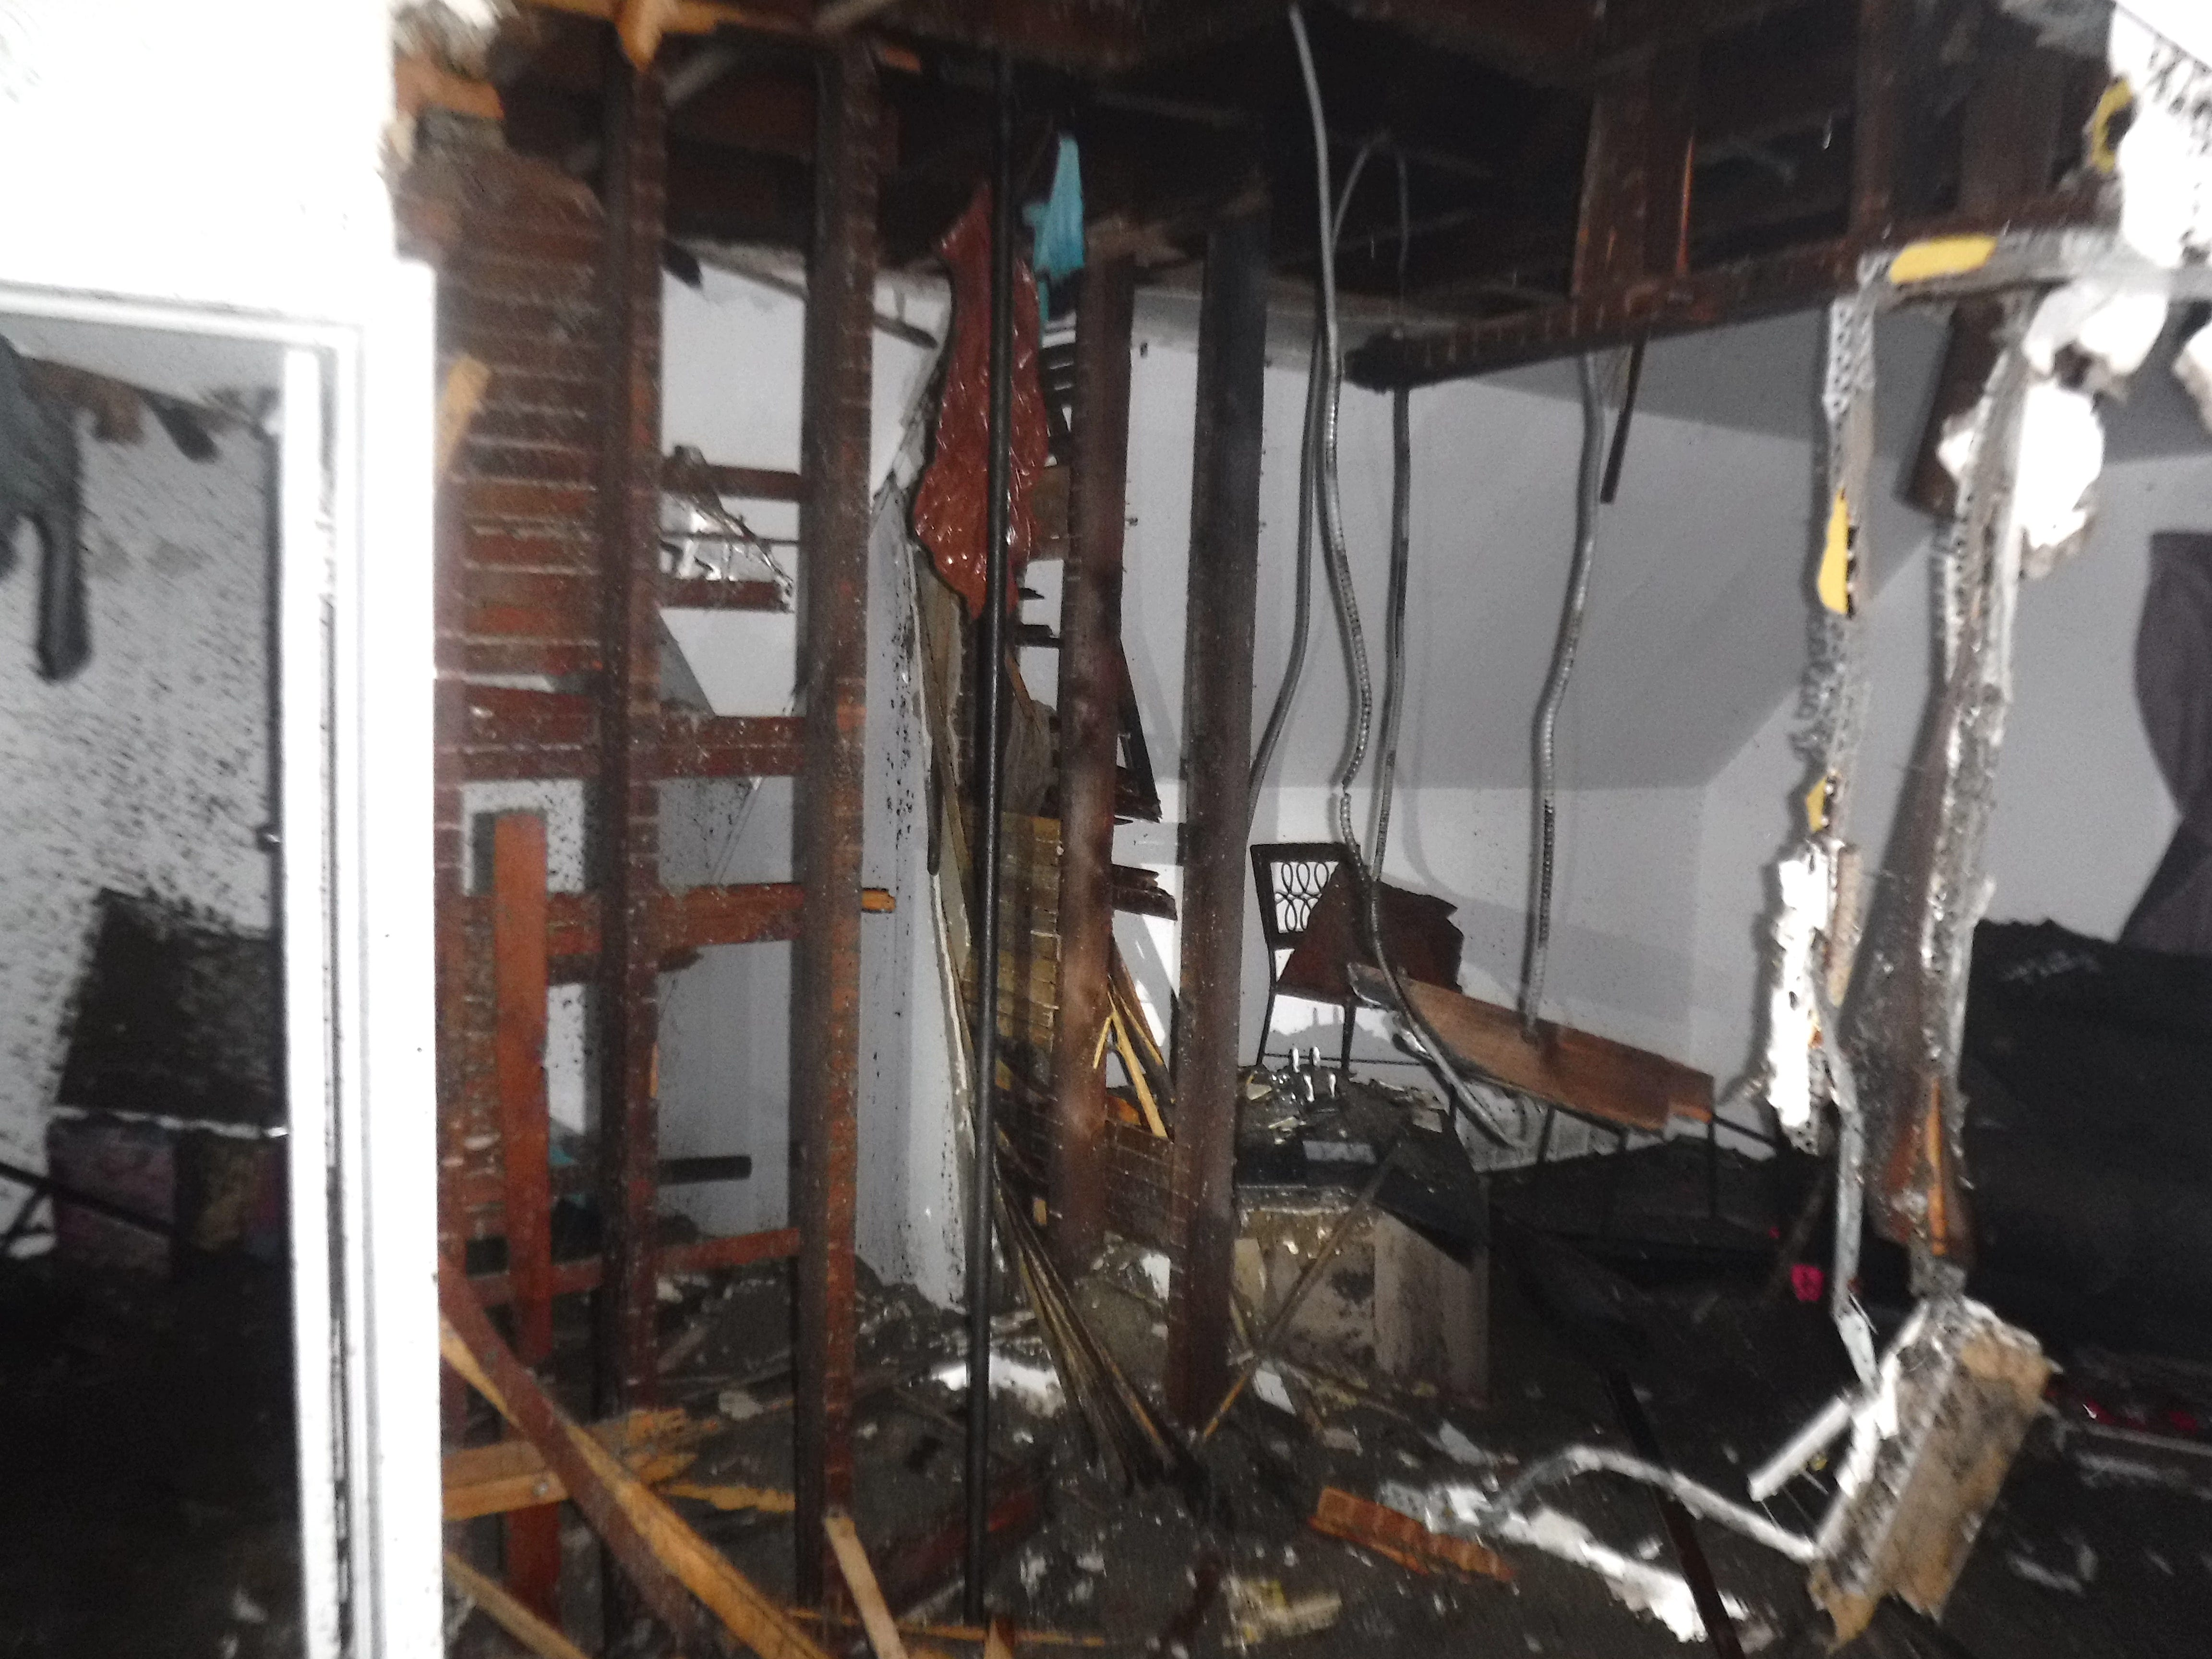 Damage inside a home with an electrical fire.